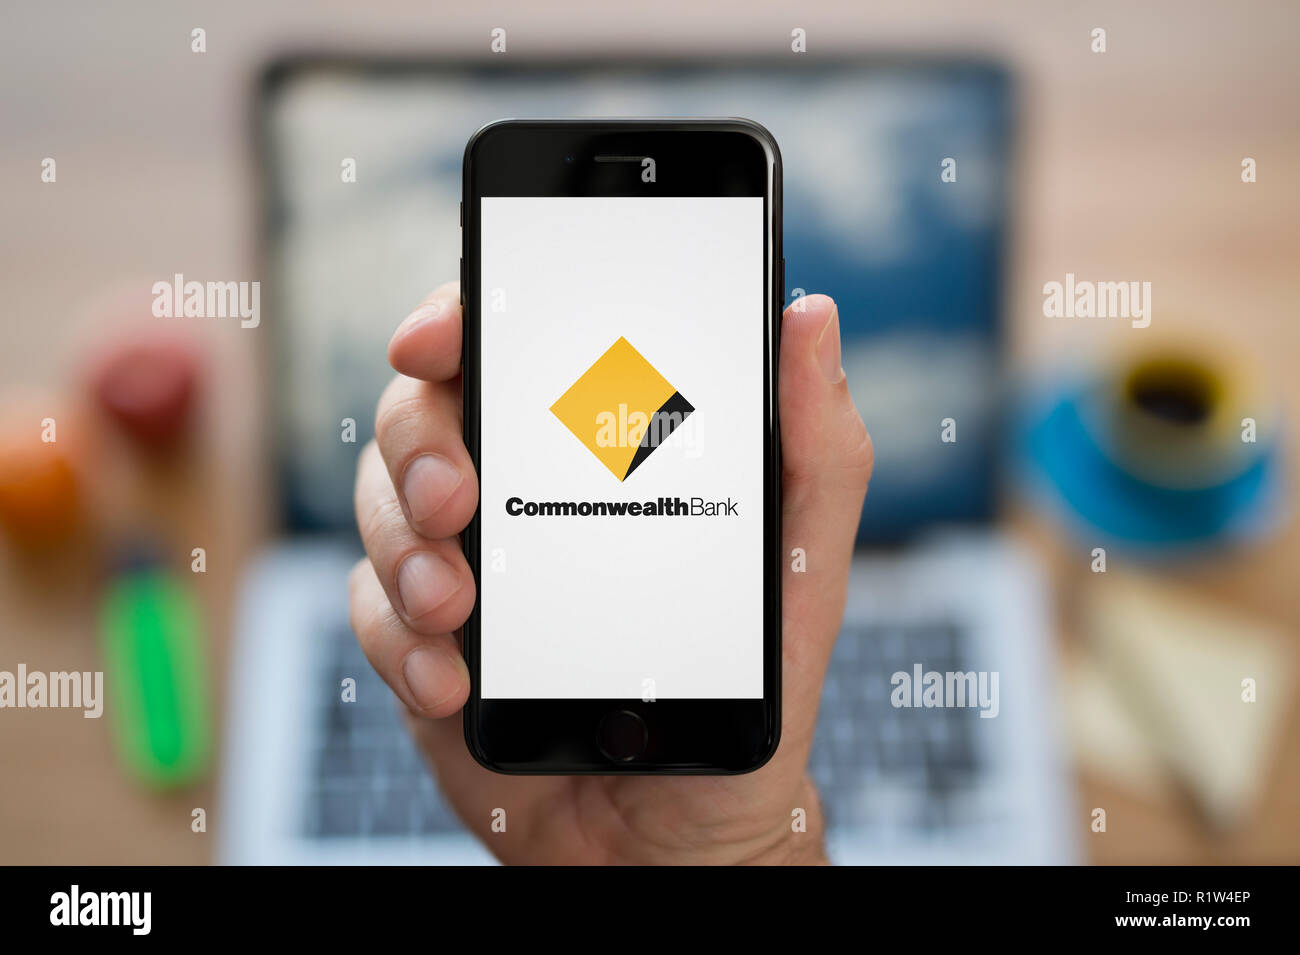 A man looks at his iPhone which displays the Commonwealth Bank logo, while sat at his computer desk (Editorial use only). - Stock Image